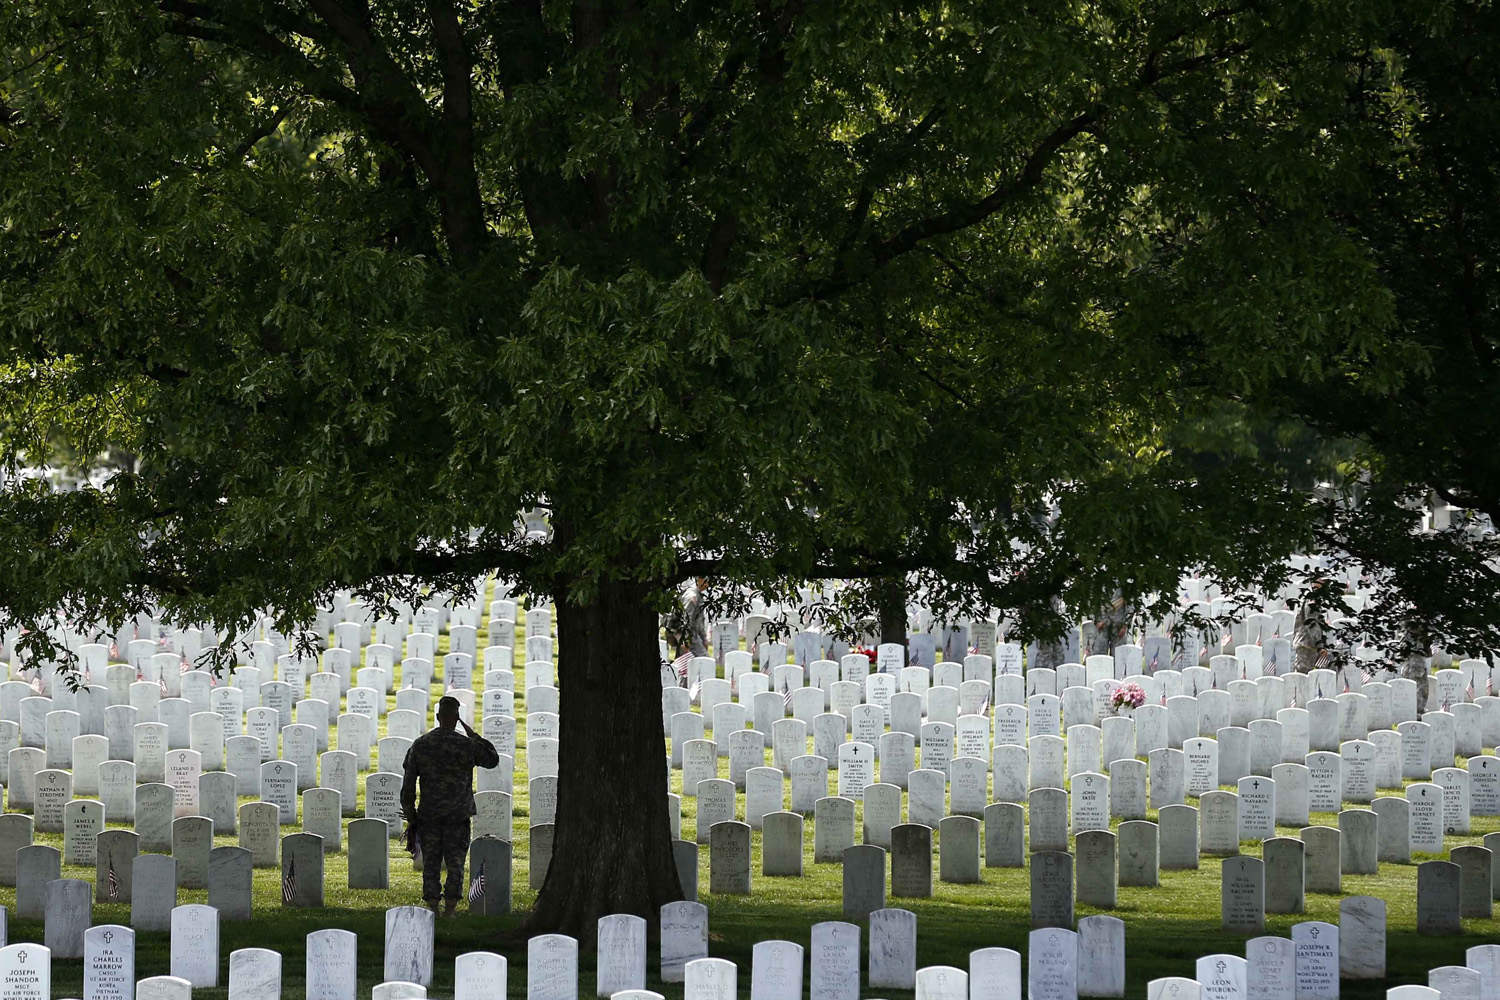 May 22, 2014. A member of the Third U.S. Infantry Regiment (The Old Guard) salutes in front of a grave during a  Flags-In  ceremony at Arlington National Cemetery in Washington.